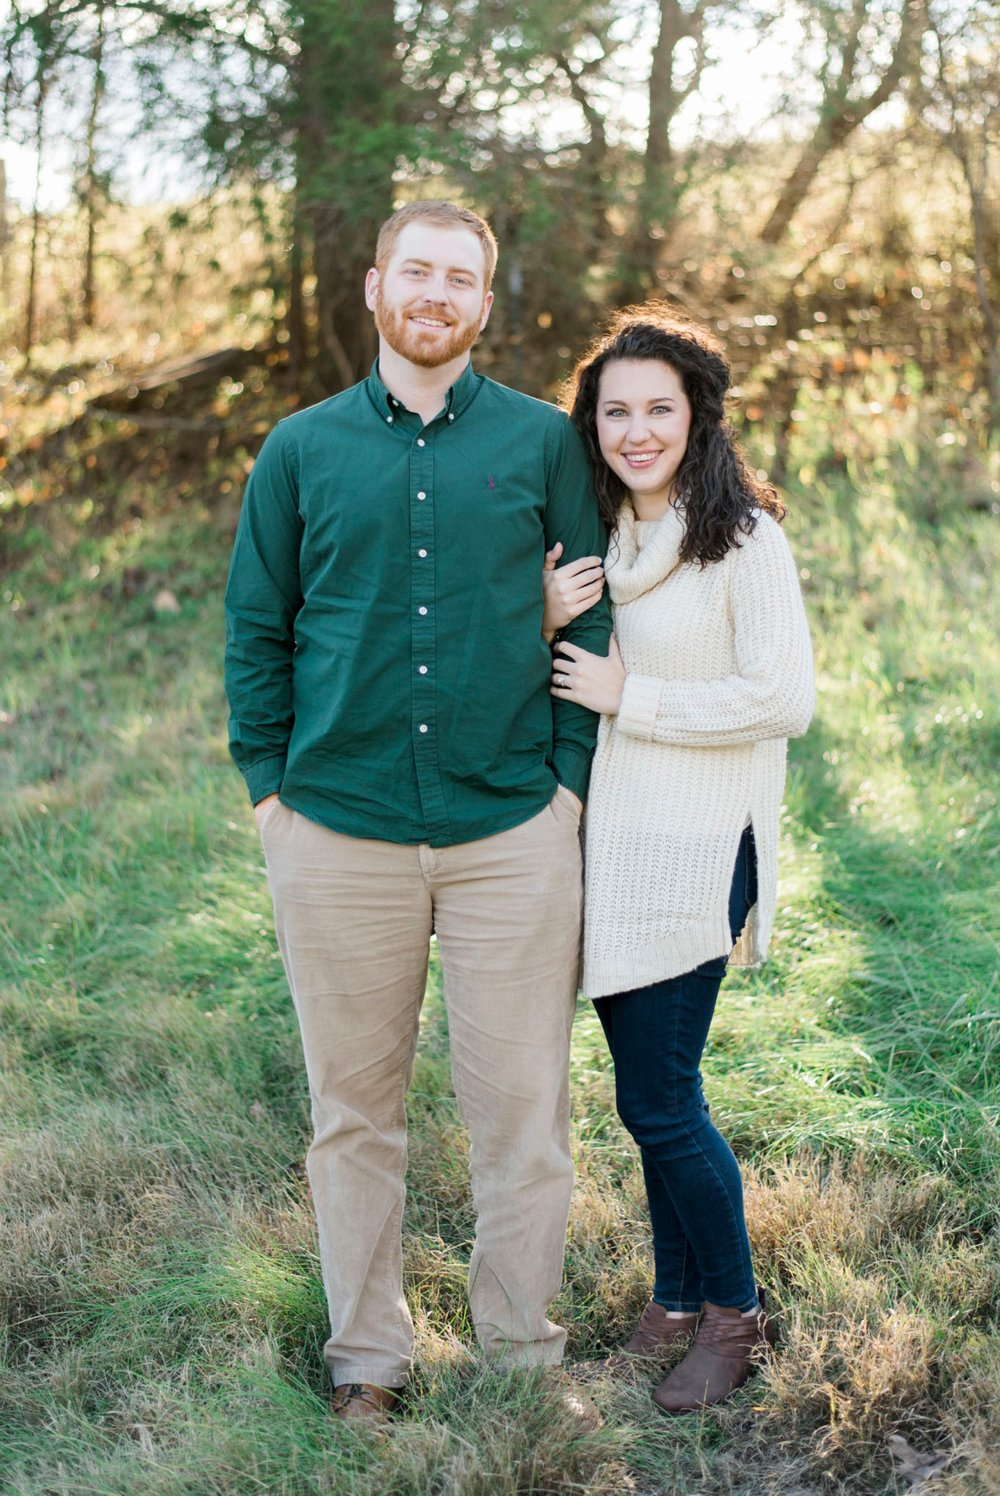 SorellaFarms_EngagementSession_VirginiaweddingPhotographer 6.jpg